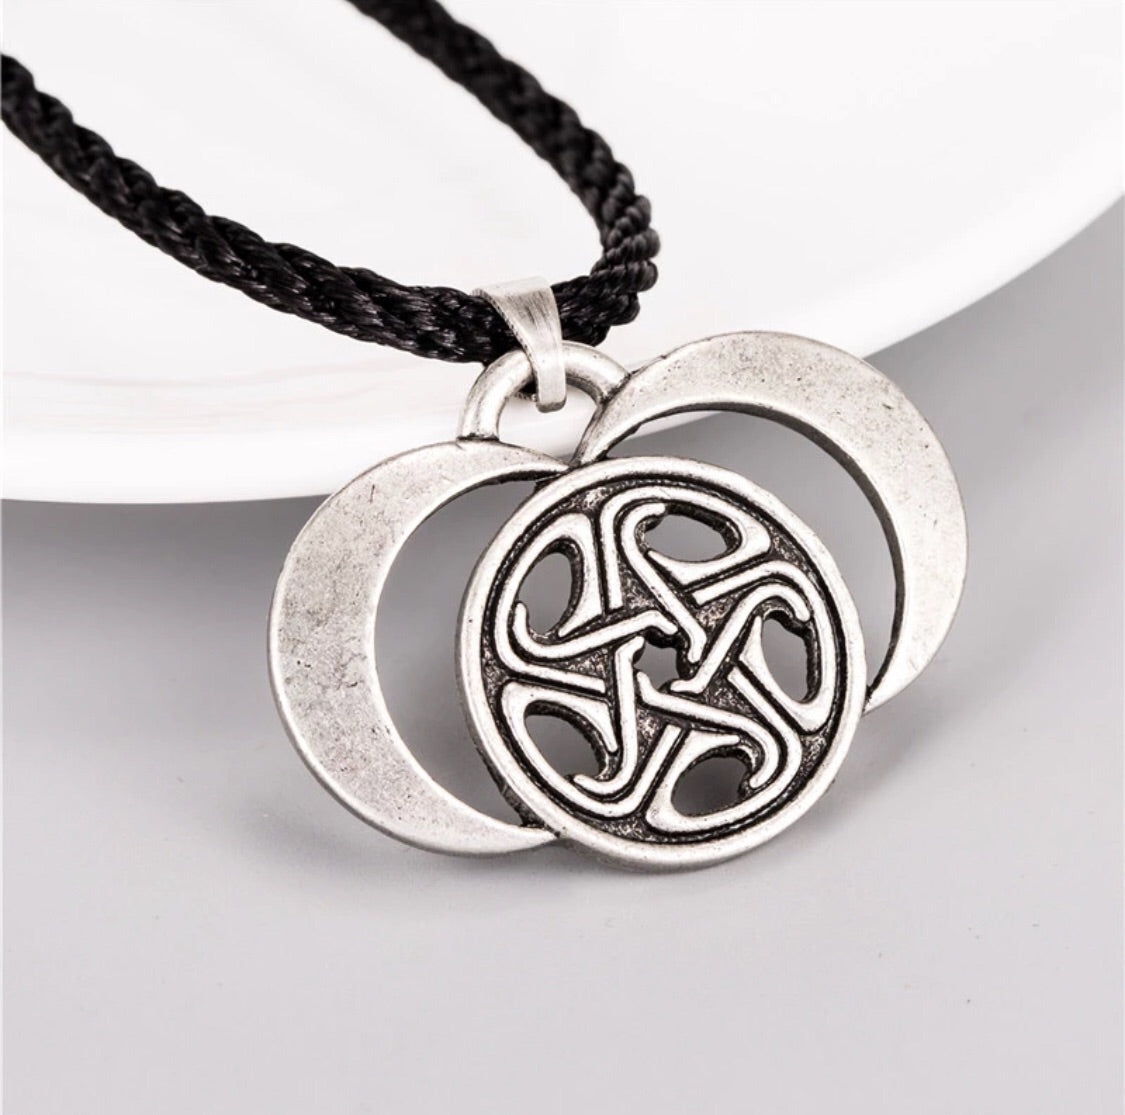 wheelhecate wheel shop pendant necklace of pendants jewelry necklaces hecate category by